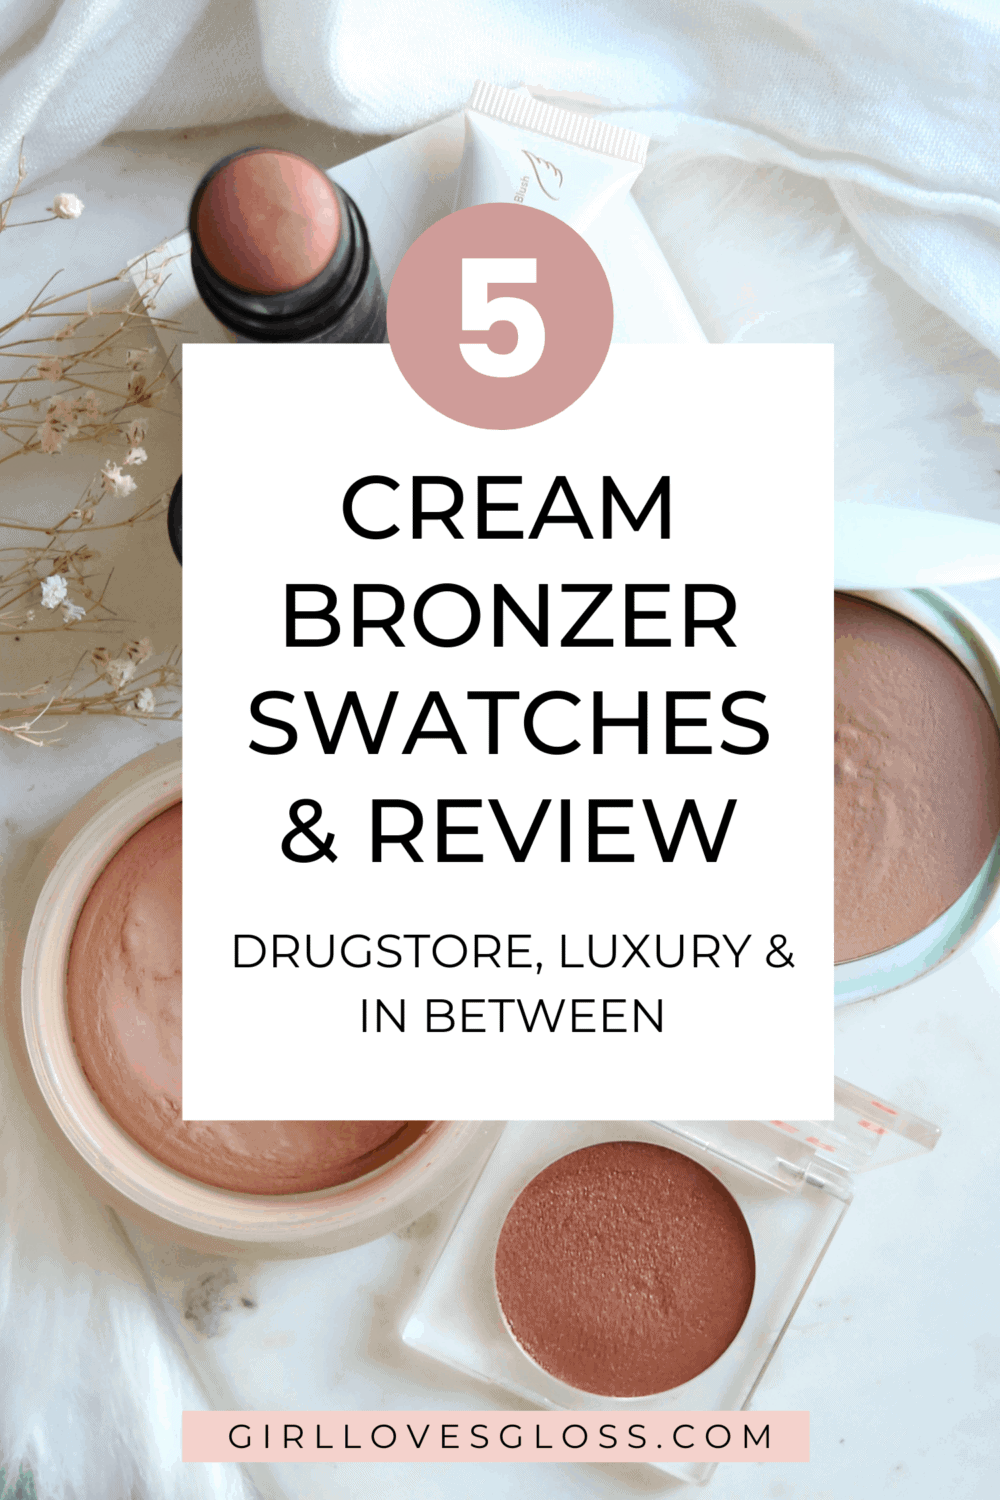 Cream Bronzer Comparison Chanel vs Tarte vs Nudestix vs Tower 28 vs Quo Beauty